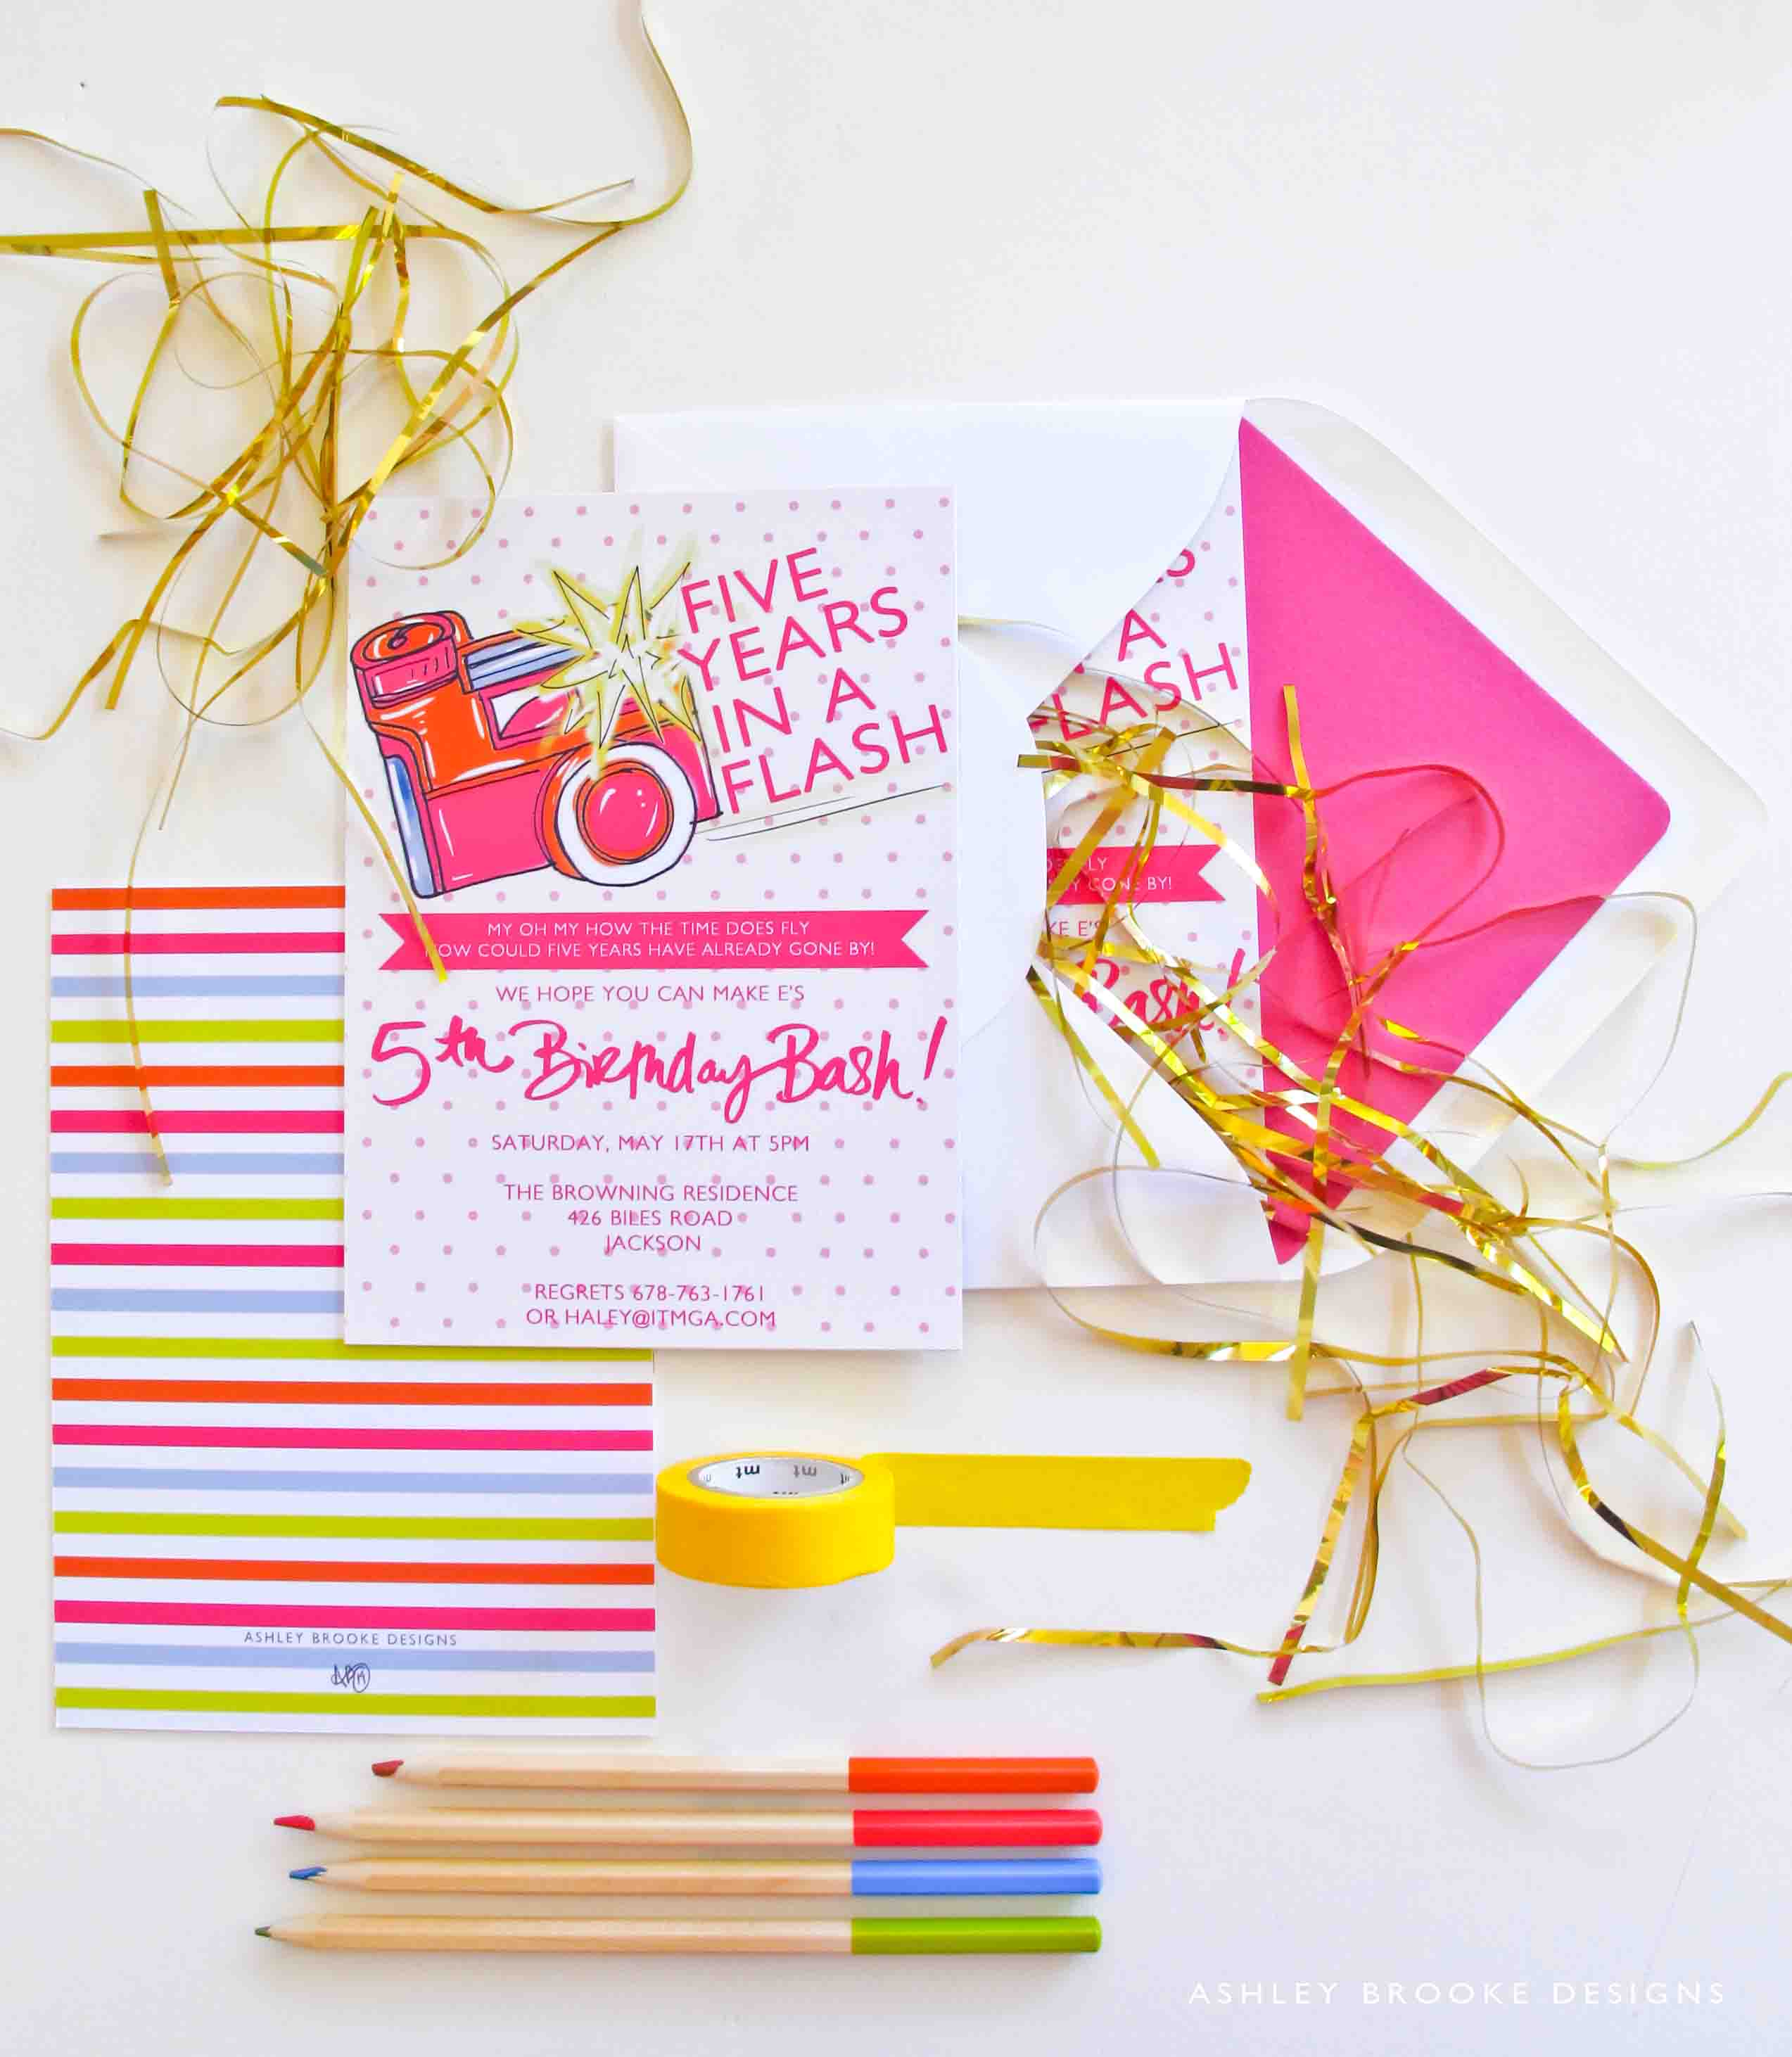 5th Birthday Party Invitation Via Ashley Brooke Designs